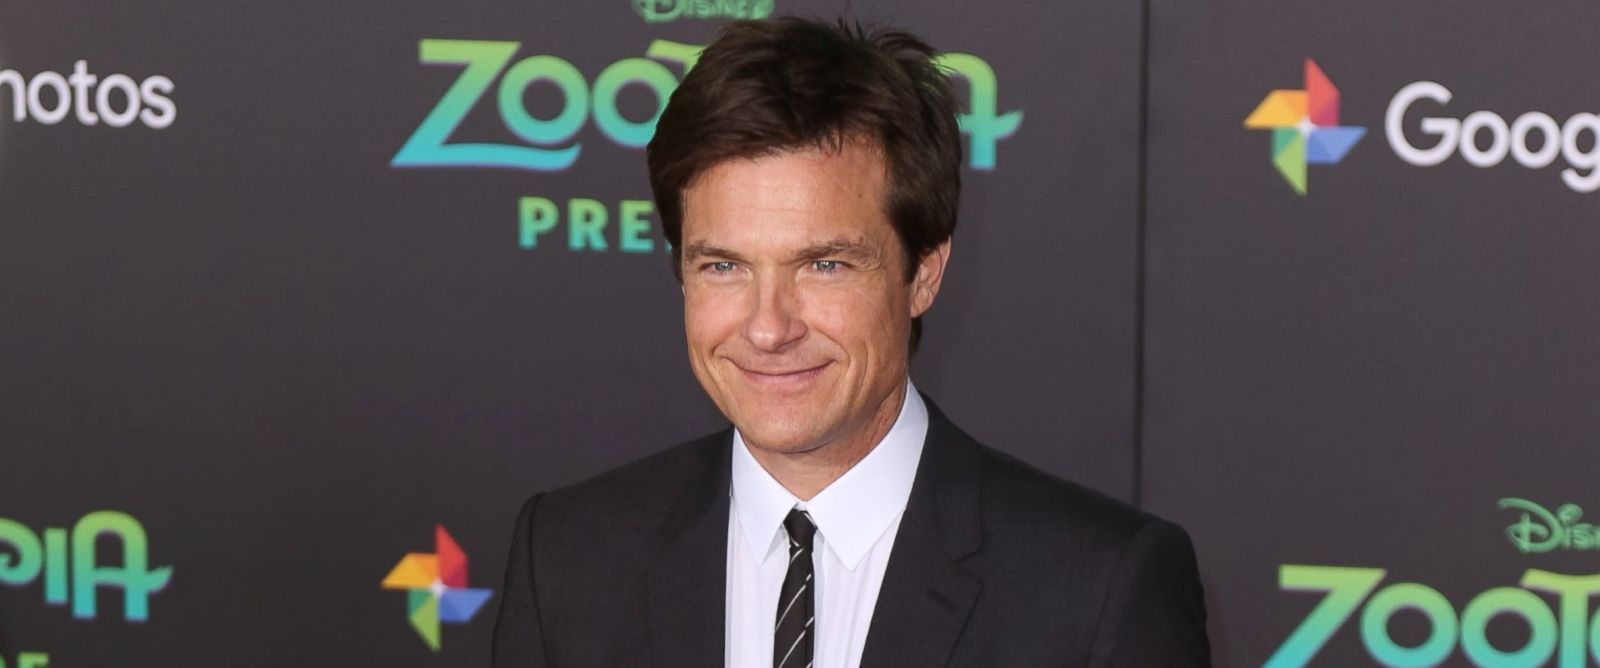 "PHOTO: Jason Bateman is seen attending the Premiere of Walt Disney Animation Studios ""Zootopia"" at the El Capitan Theatre in Los Angeles, Feb. 18, 2016."